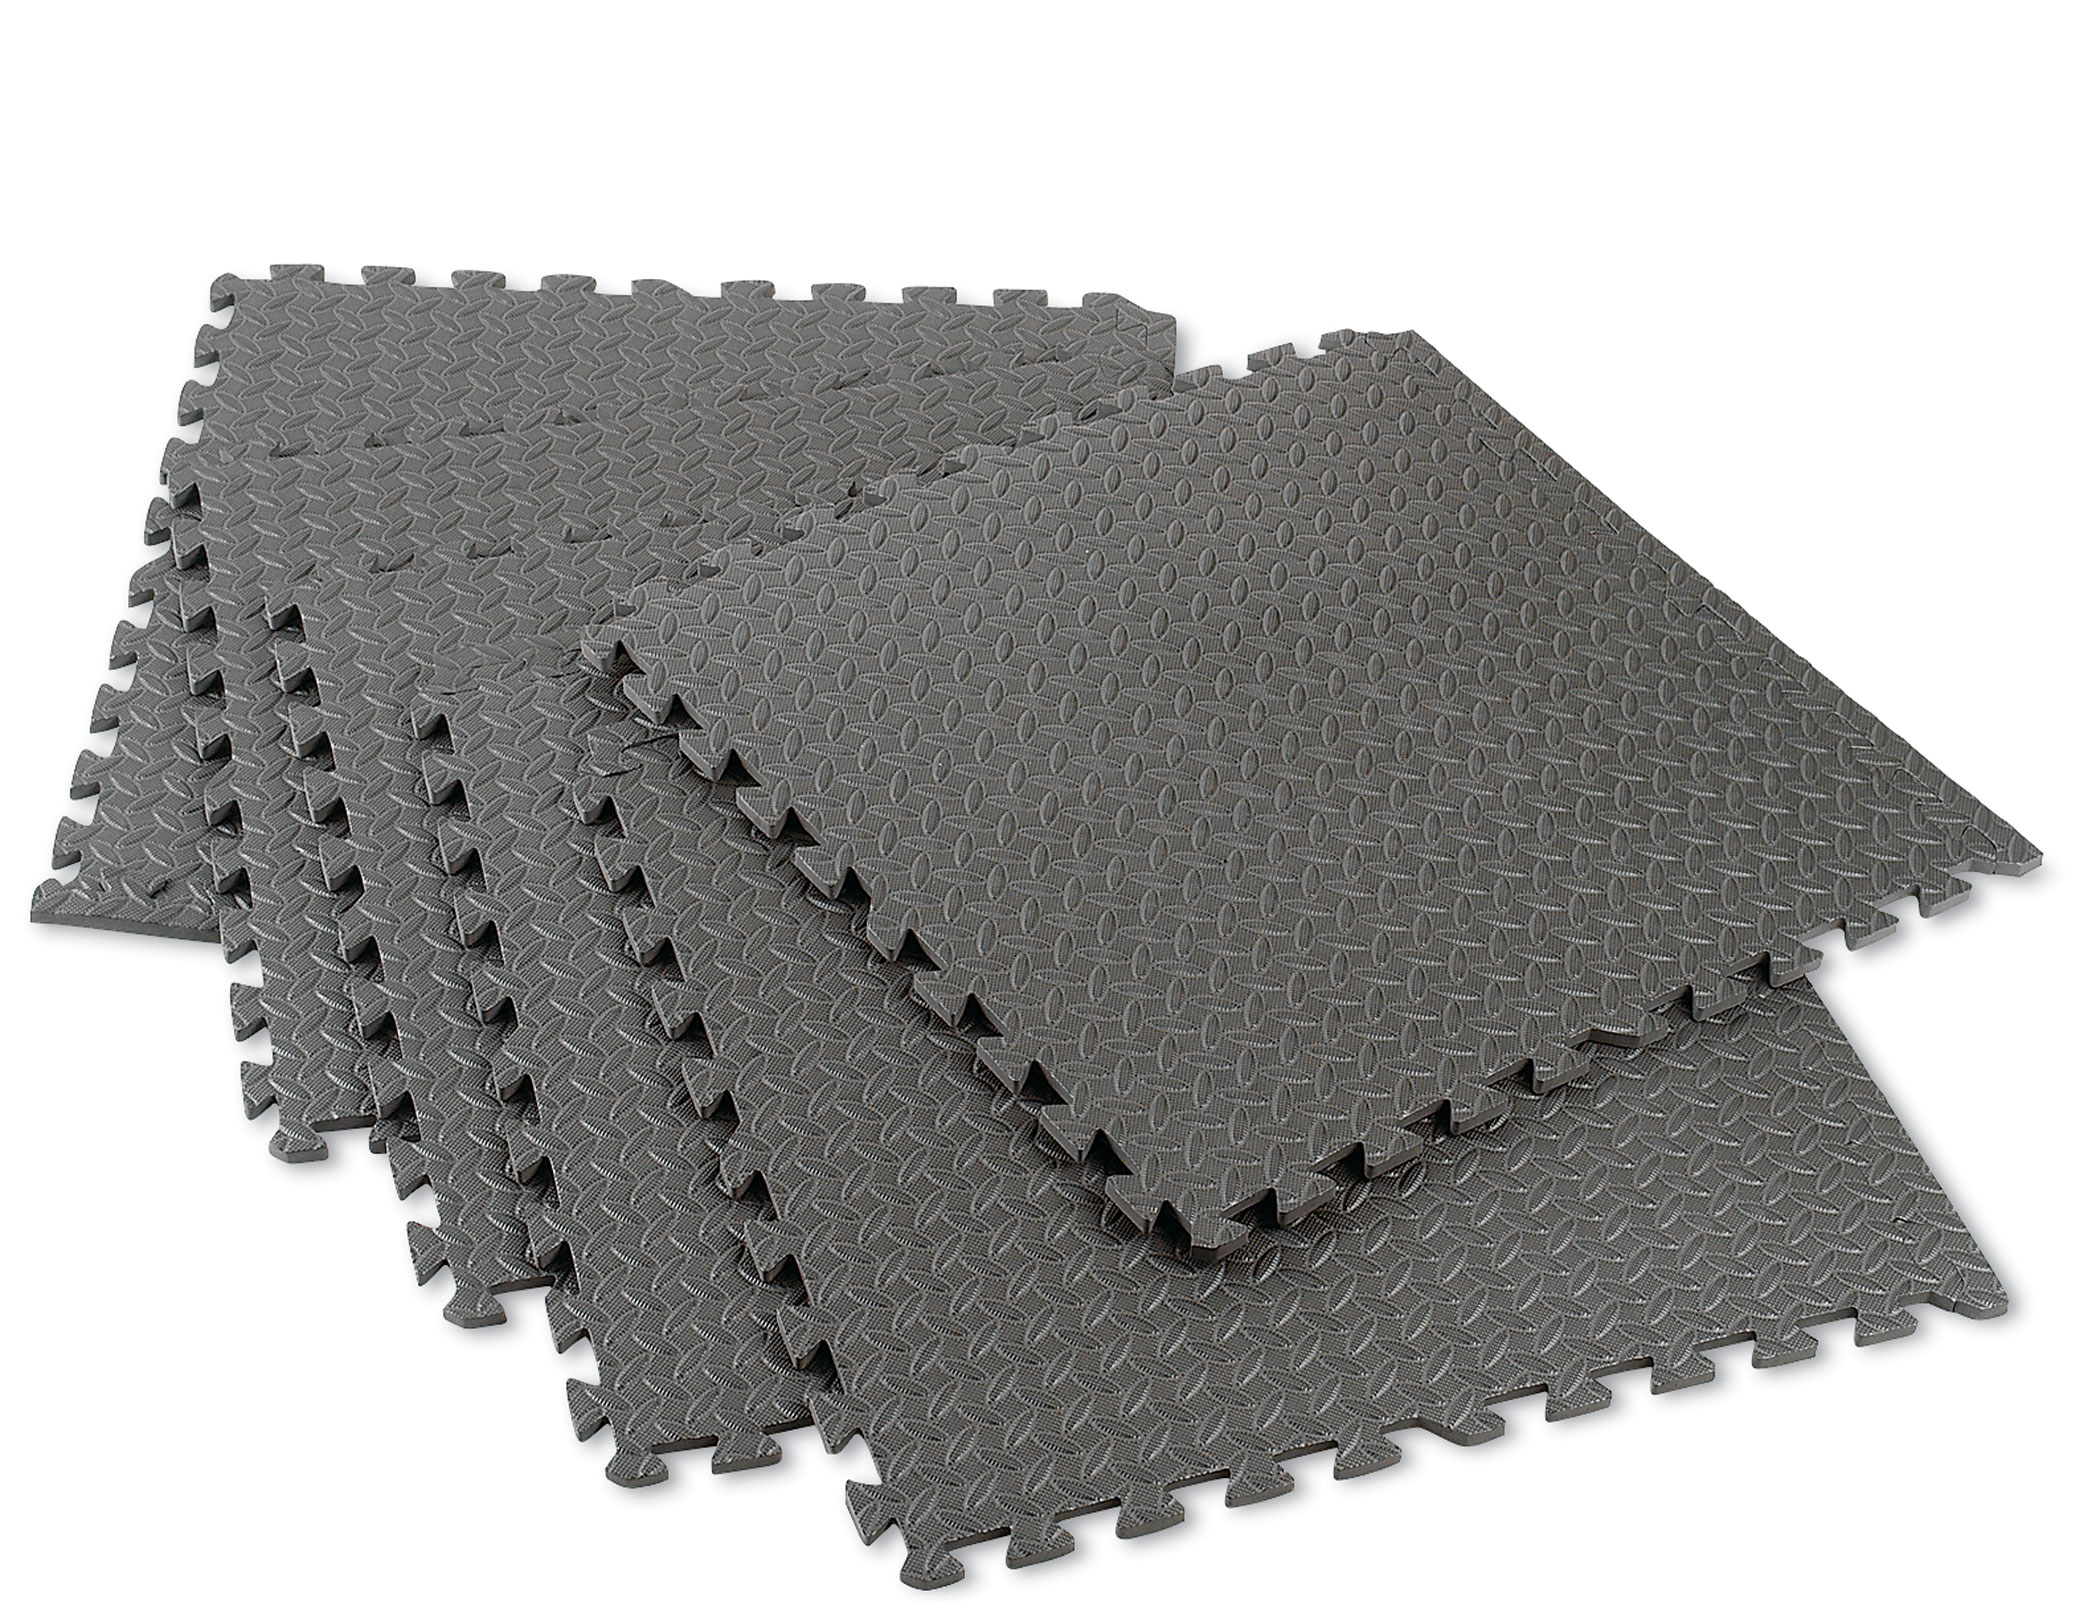 NORSK 2 ft x 2 ft 6 Pack Foam Flooring with borders